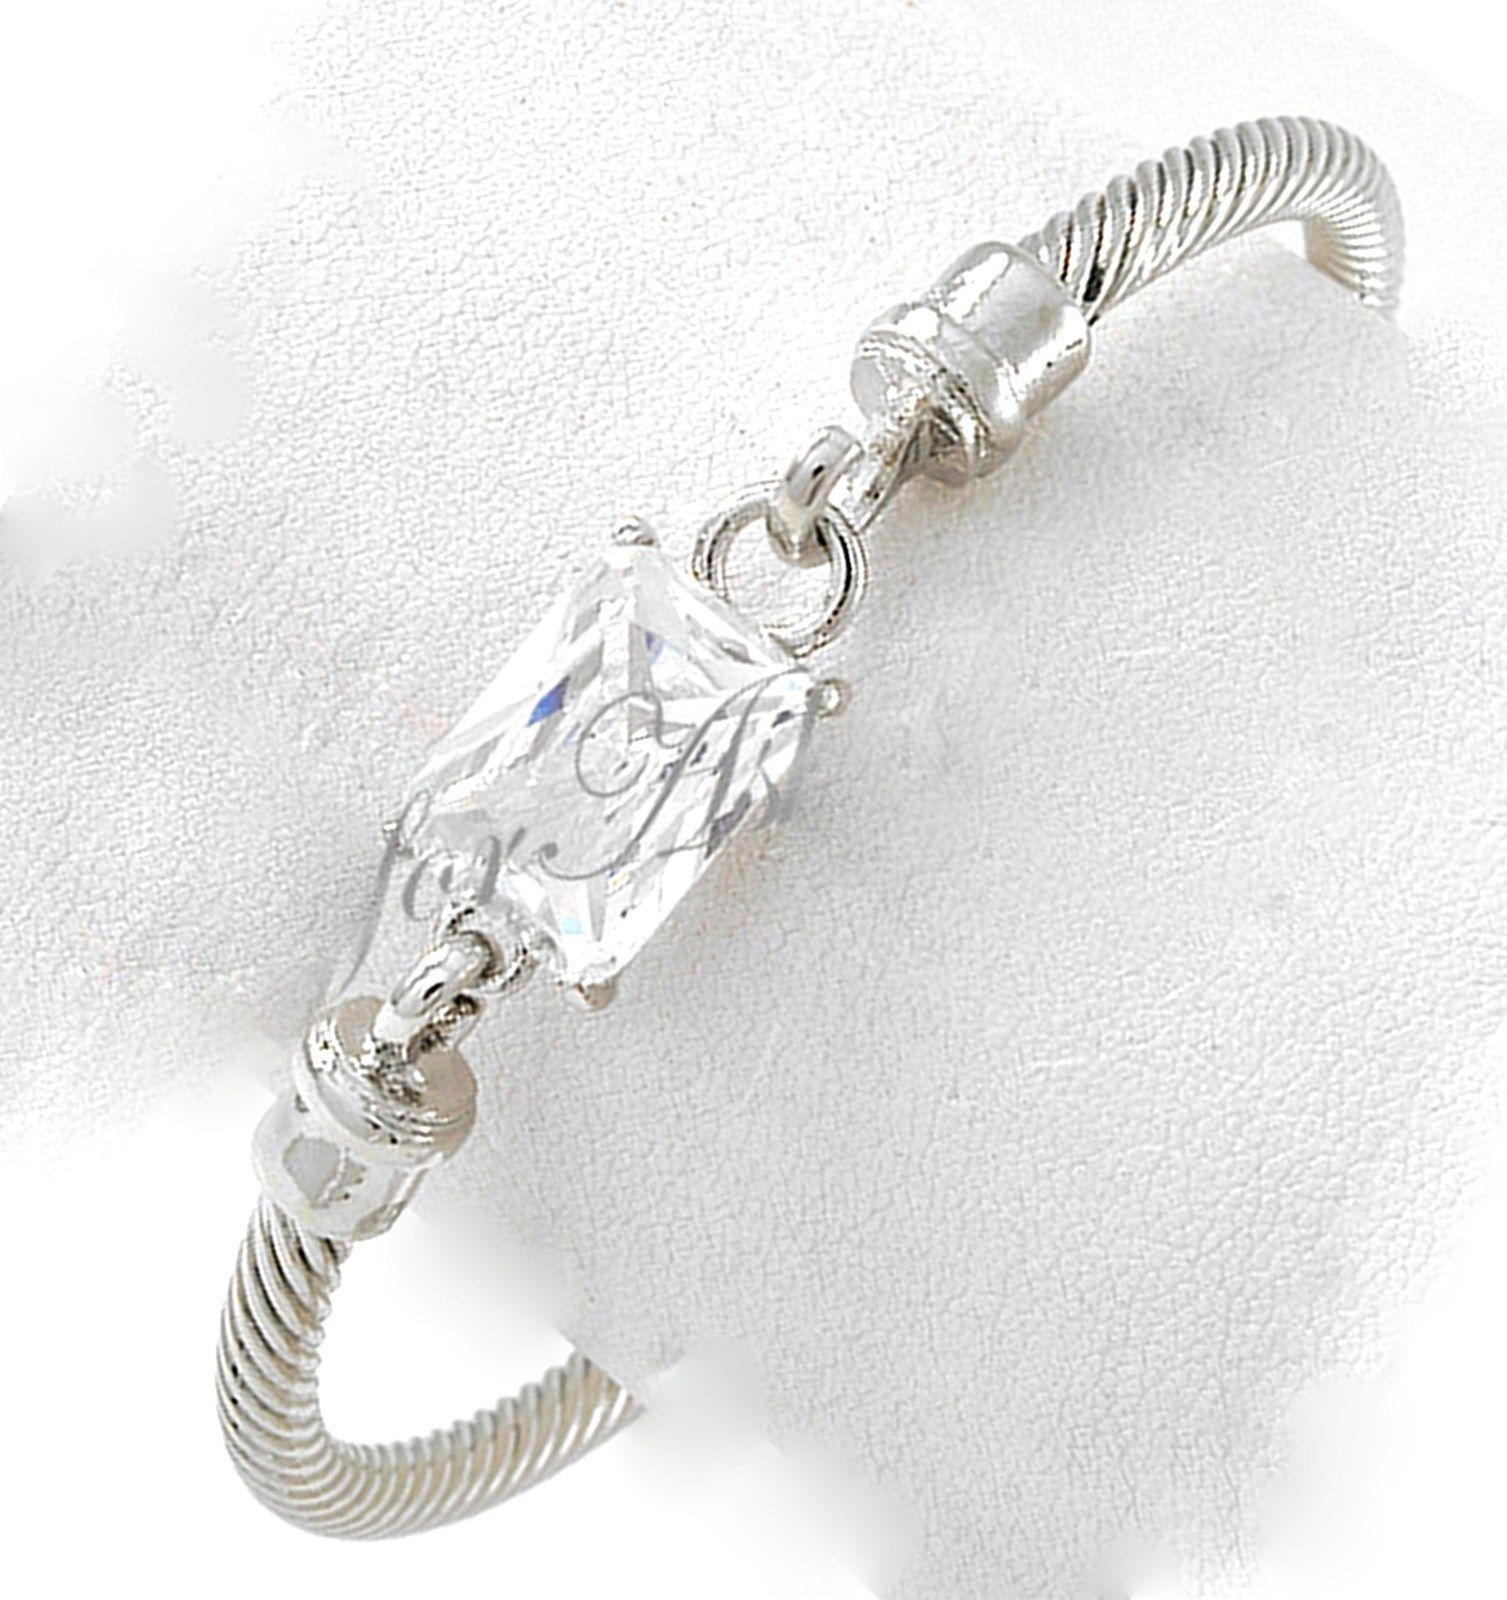 """7.5"""" Womens Classic Silver Twisted Cuff Bracelet Clear Glass Adjustable - $6.73"""